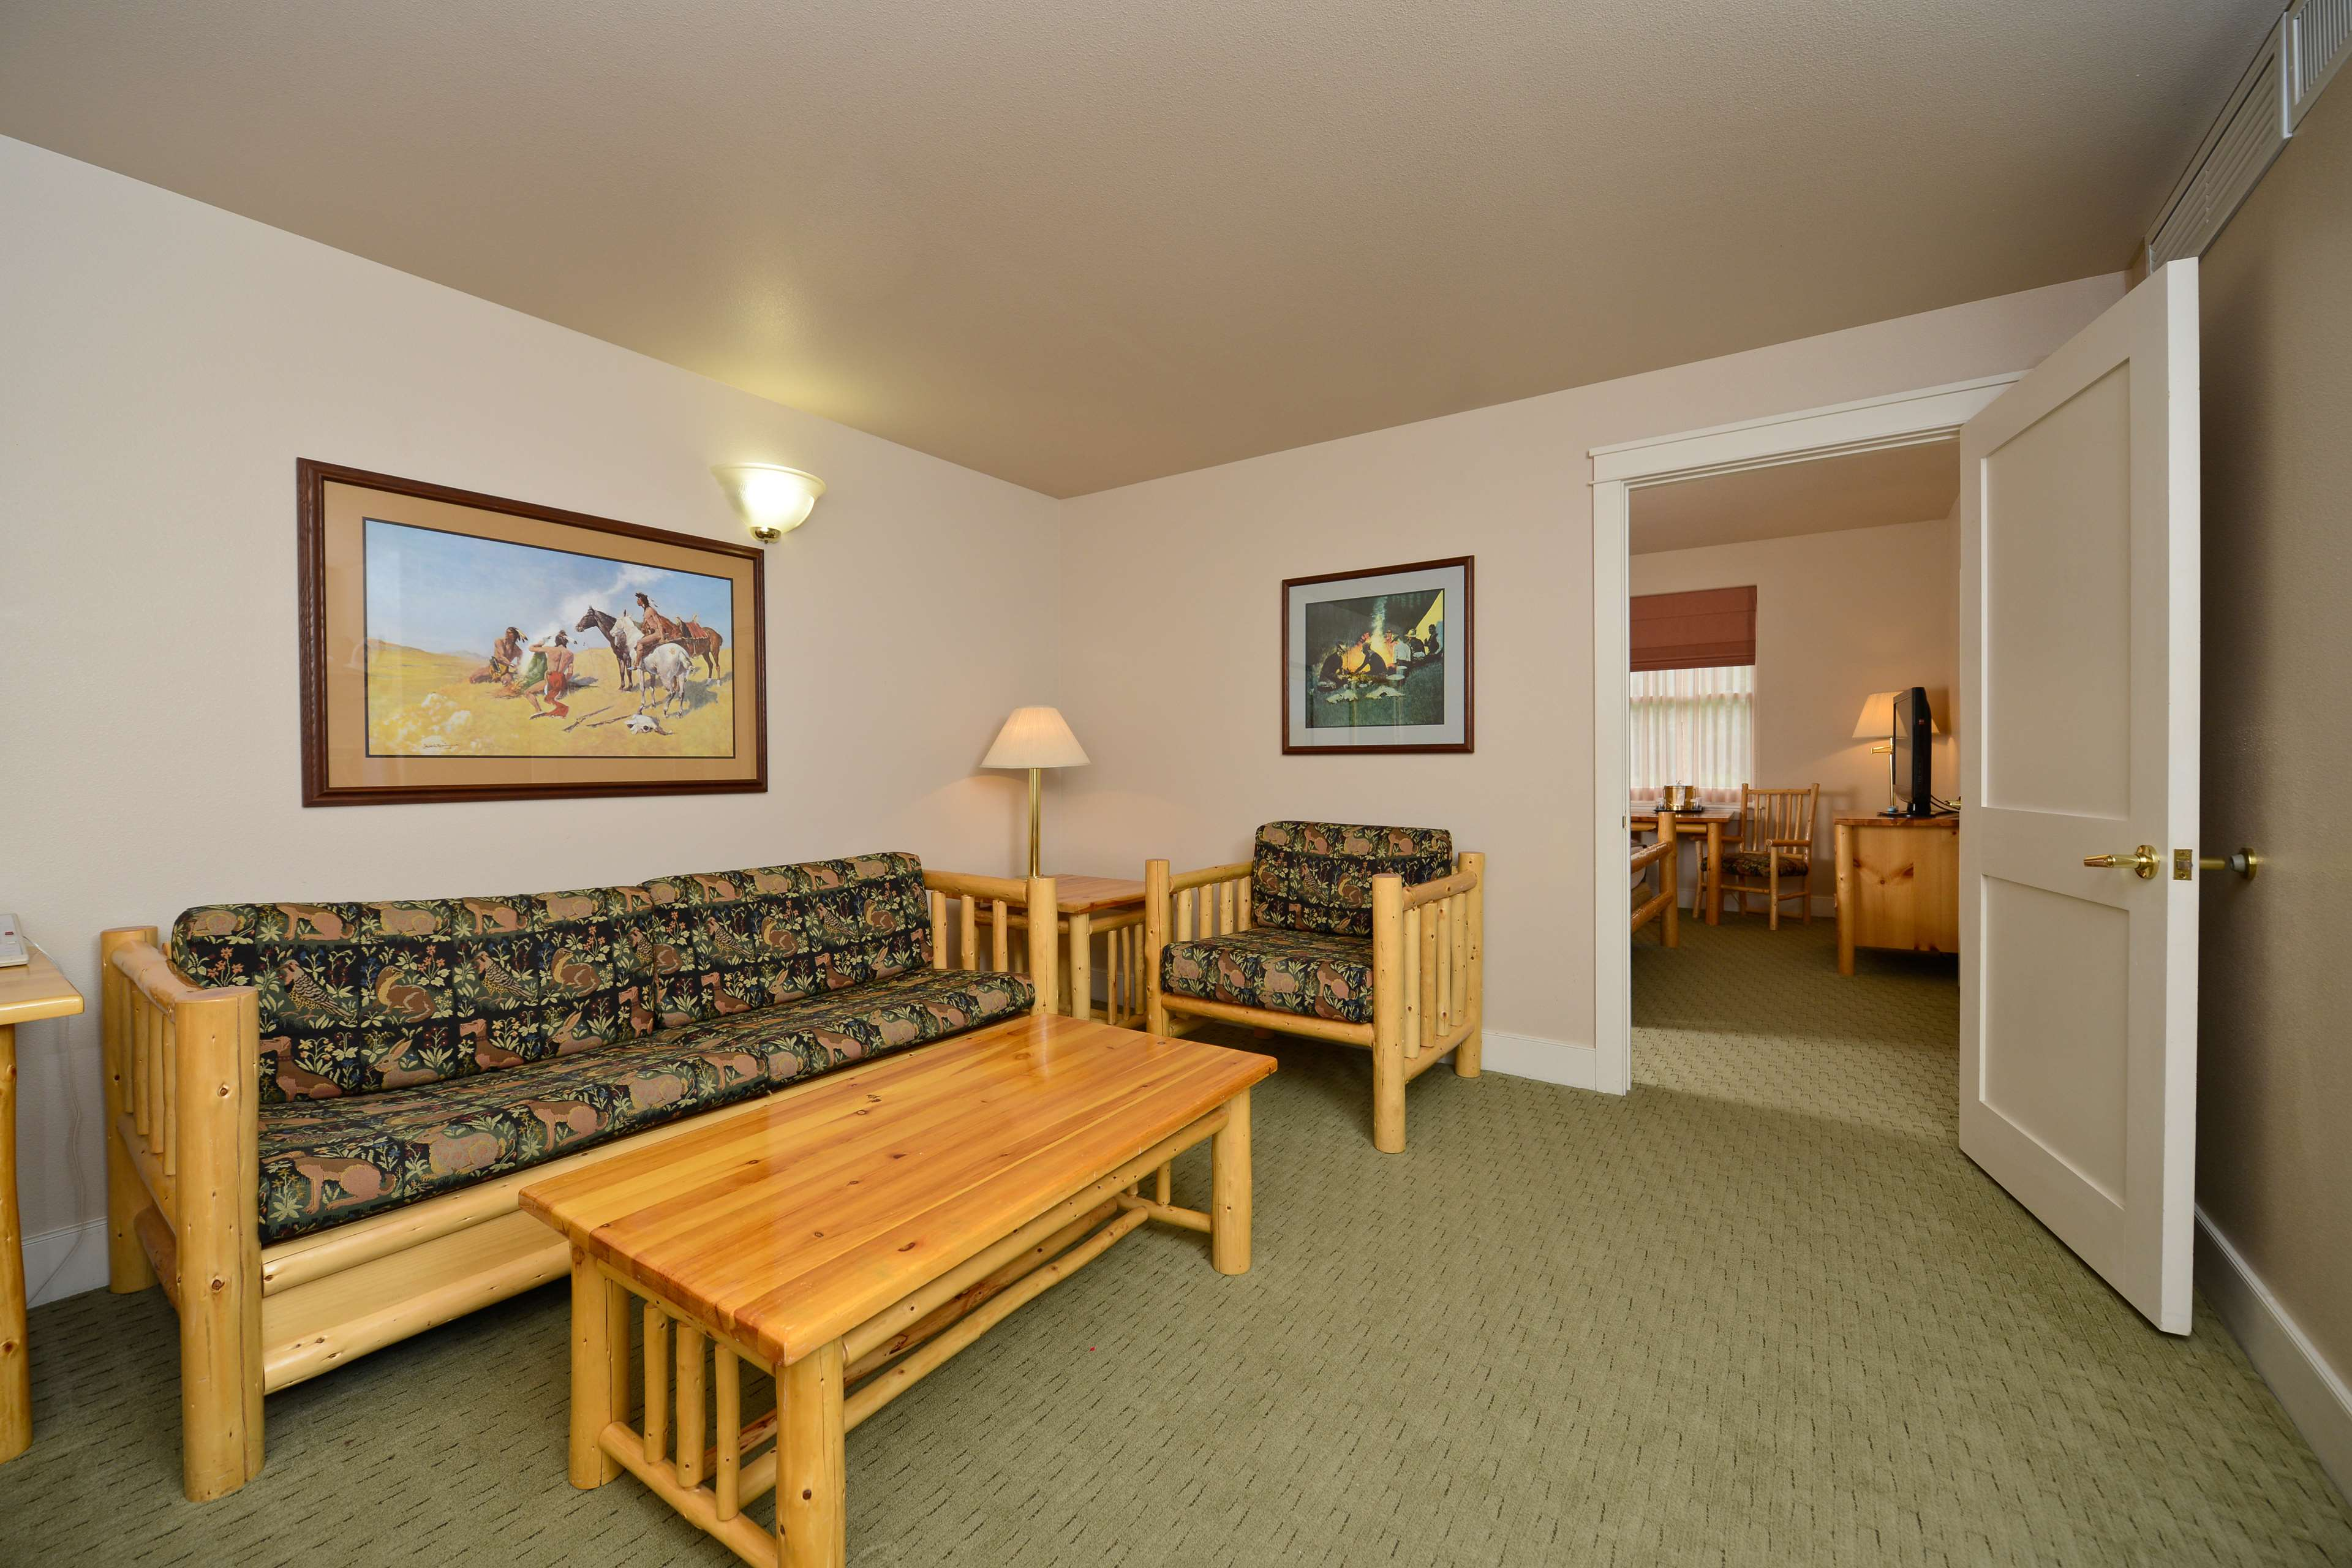 Best Western Plus Plaza Hotel image 36